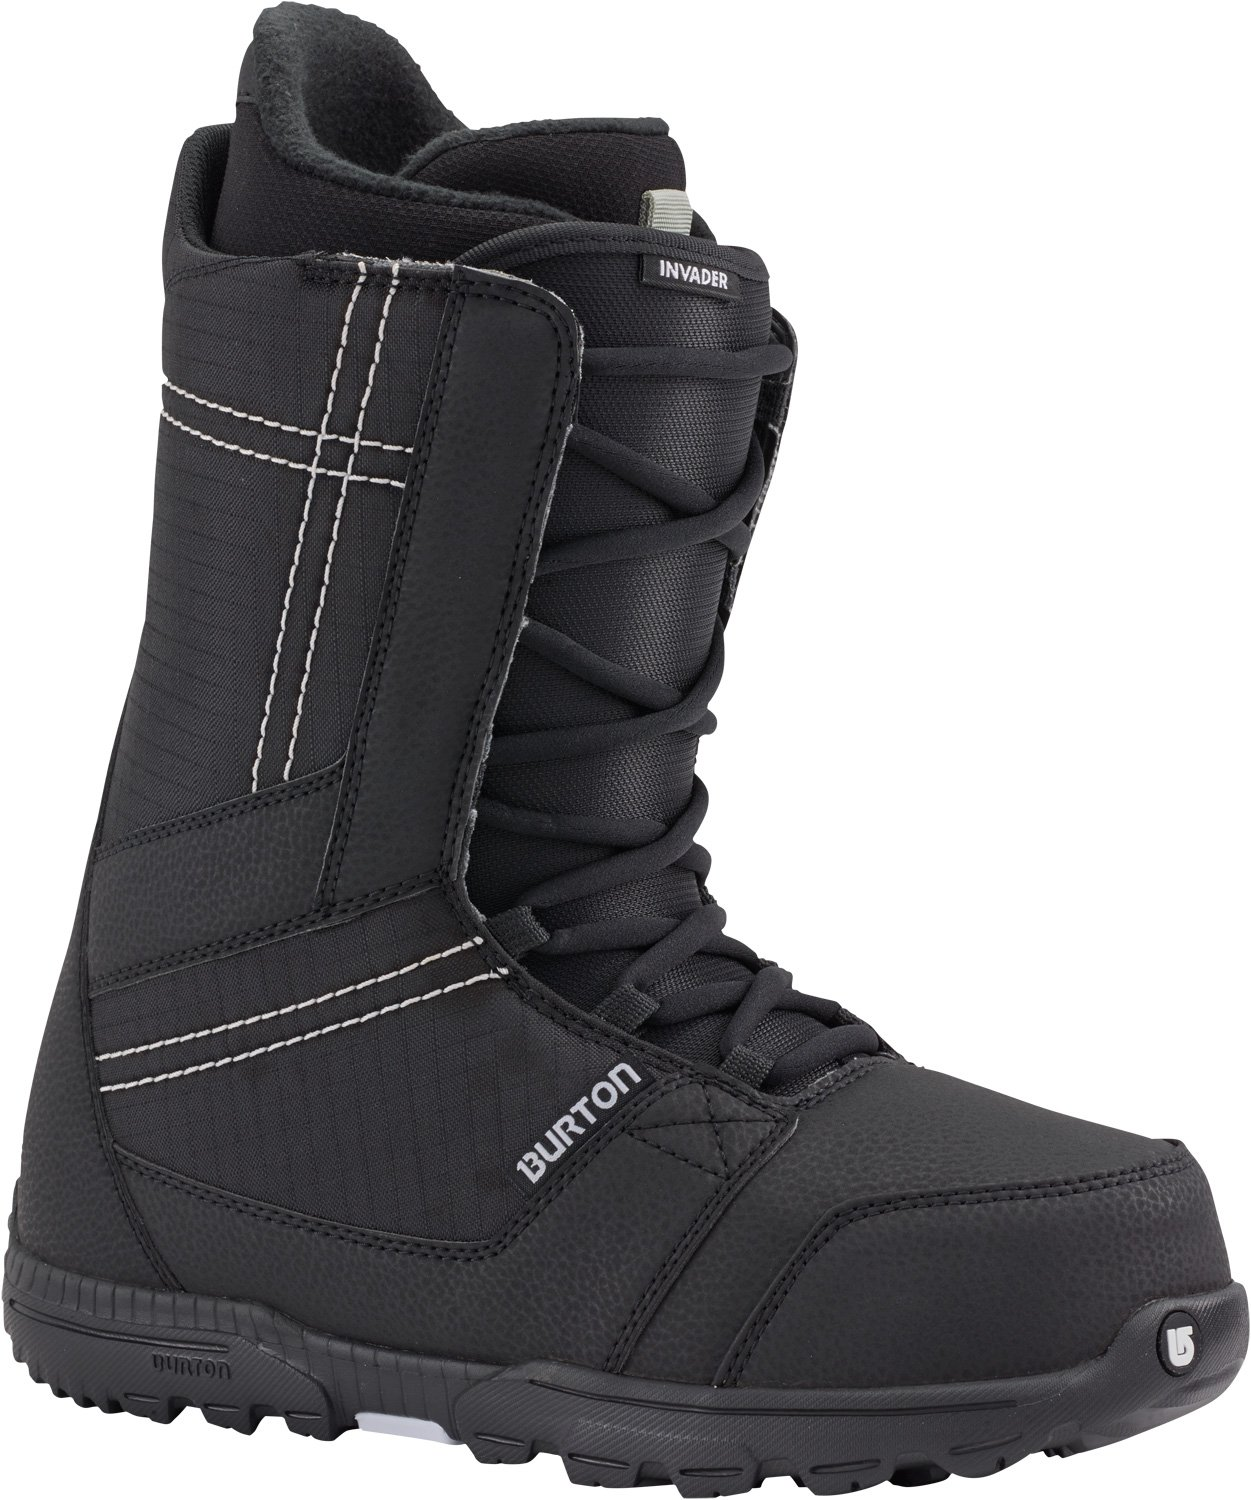 BURTON NUTRITION Burton - Mens Invader Snowboard Boots 2018, Black, 10.5 by BURTON NUTRITION